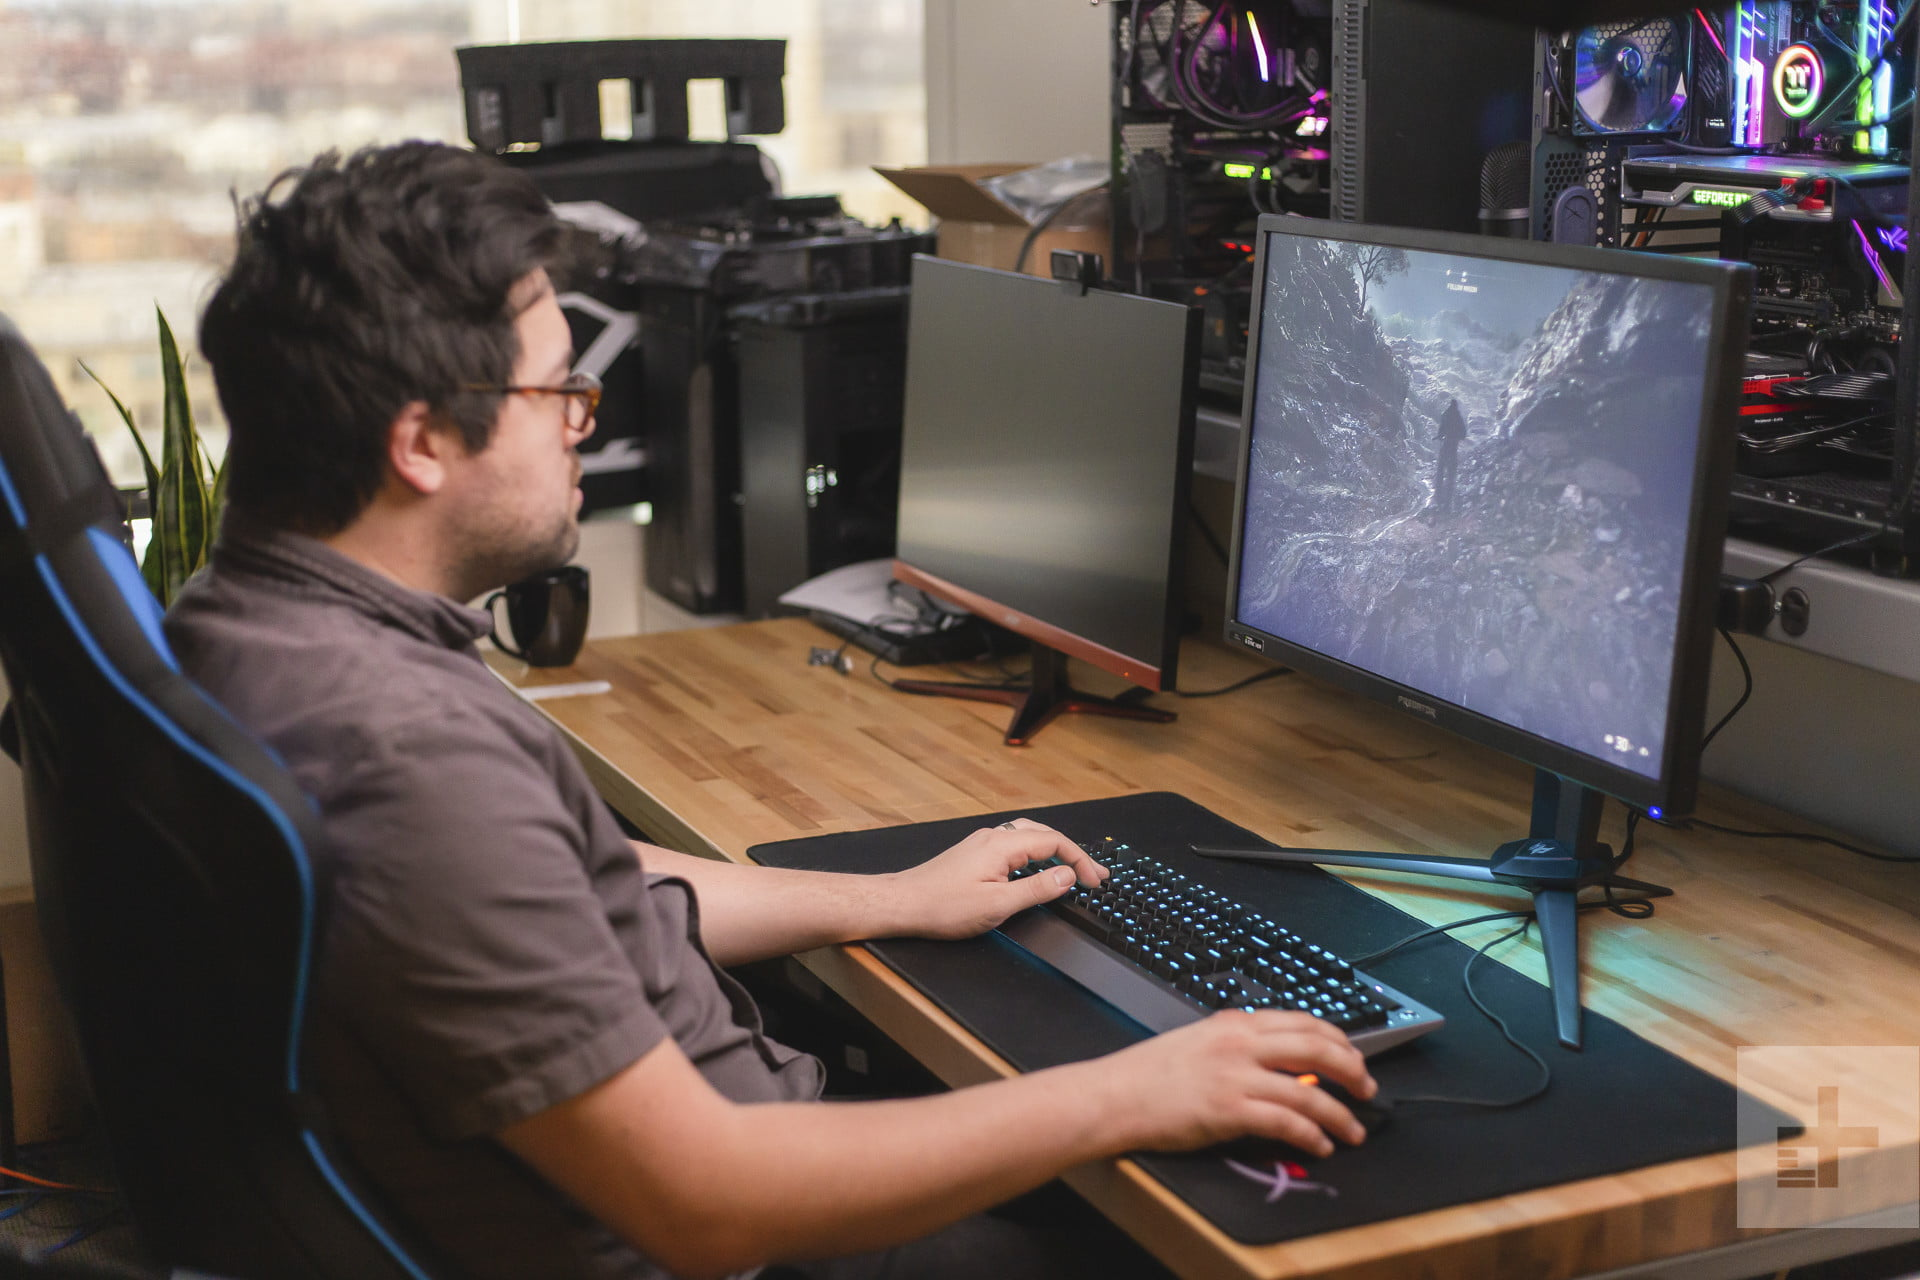 What Is VSync, and When Should You Use It? | Digital Trends